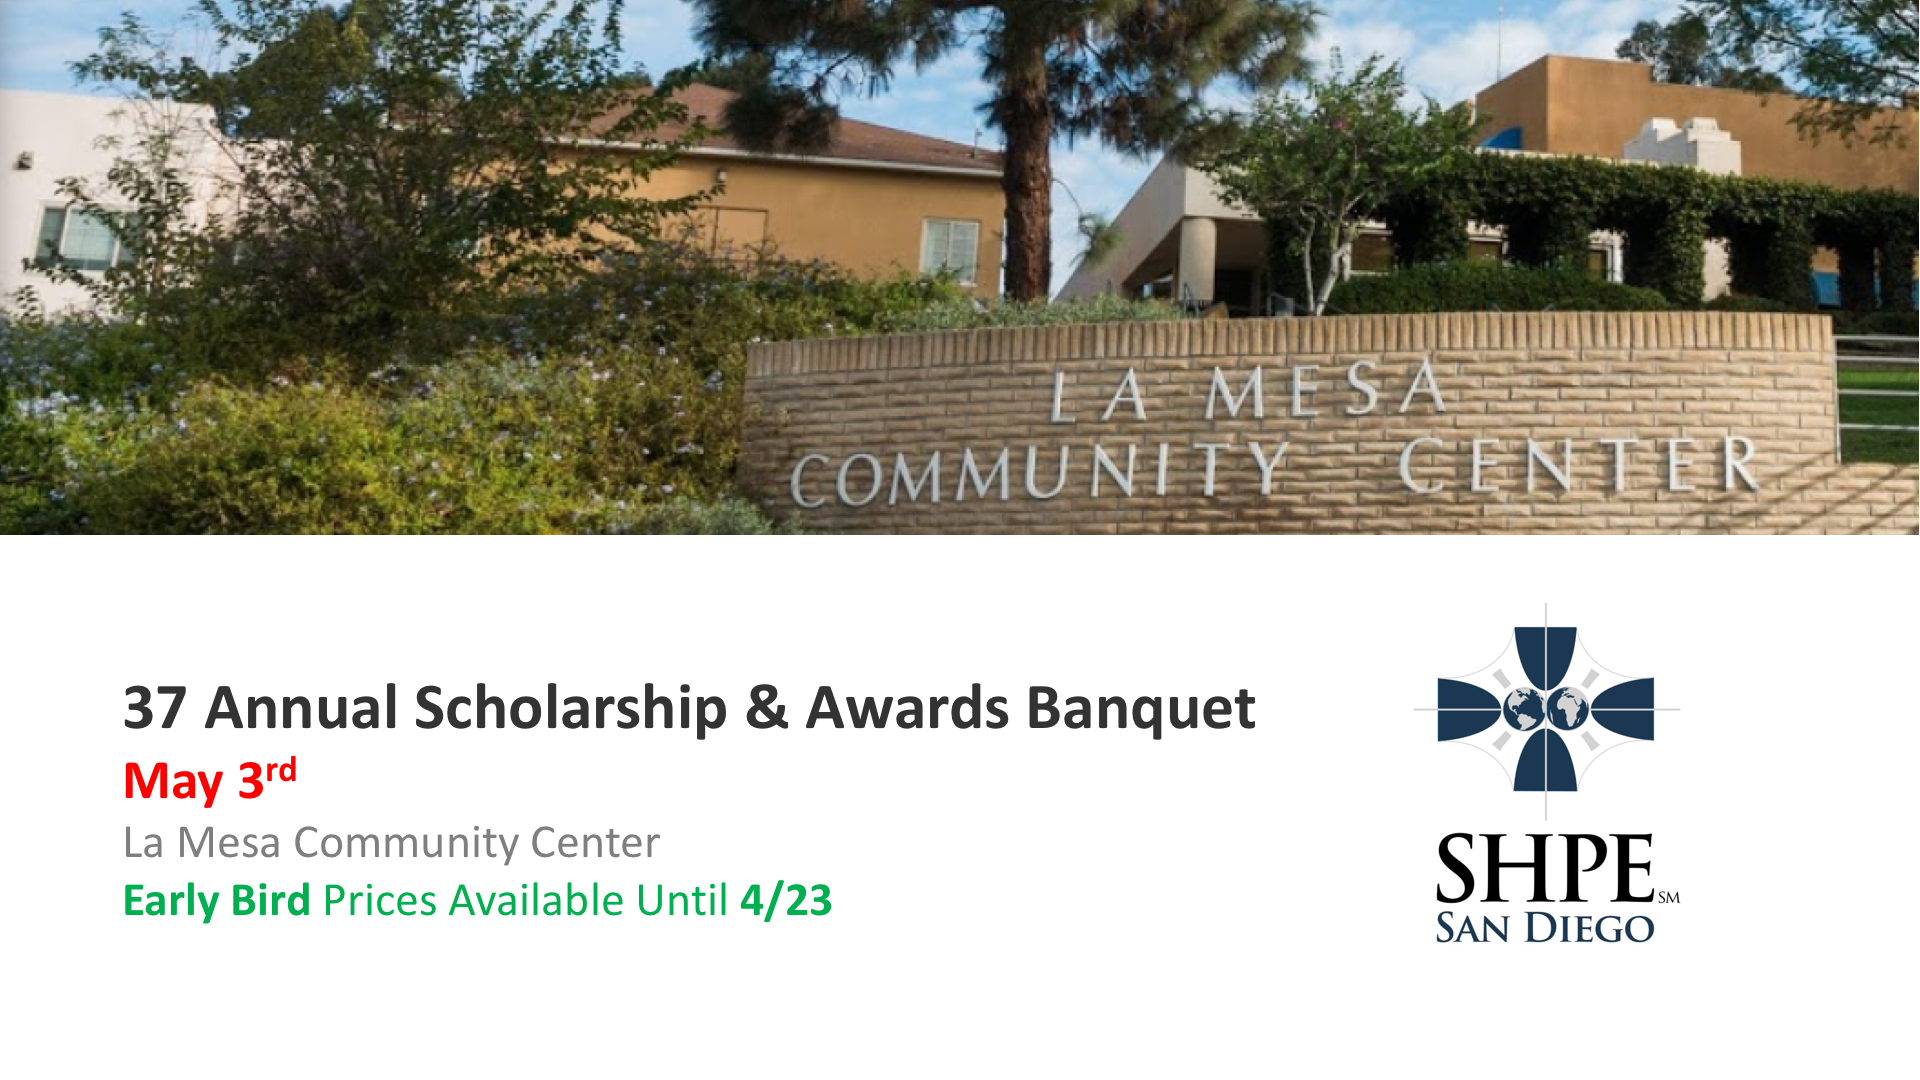 37th Annual Scholarship & Awards Banquet